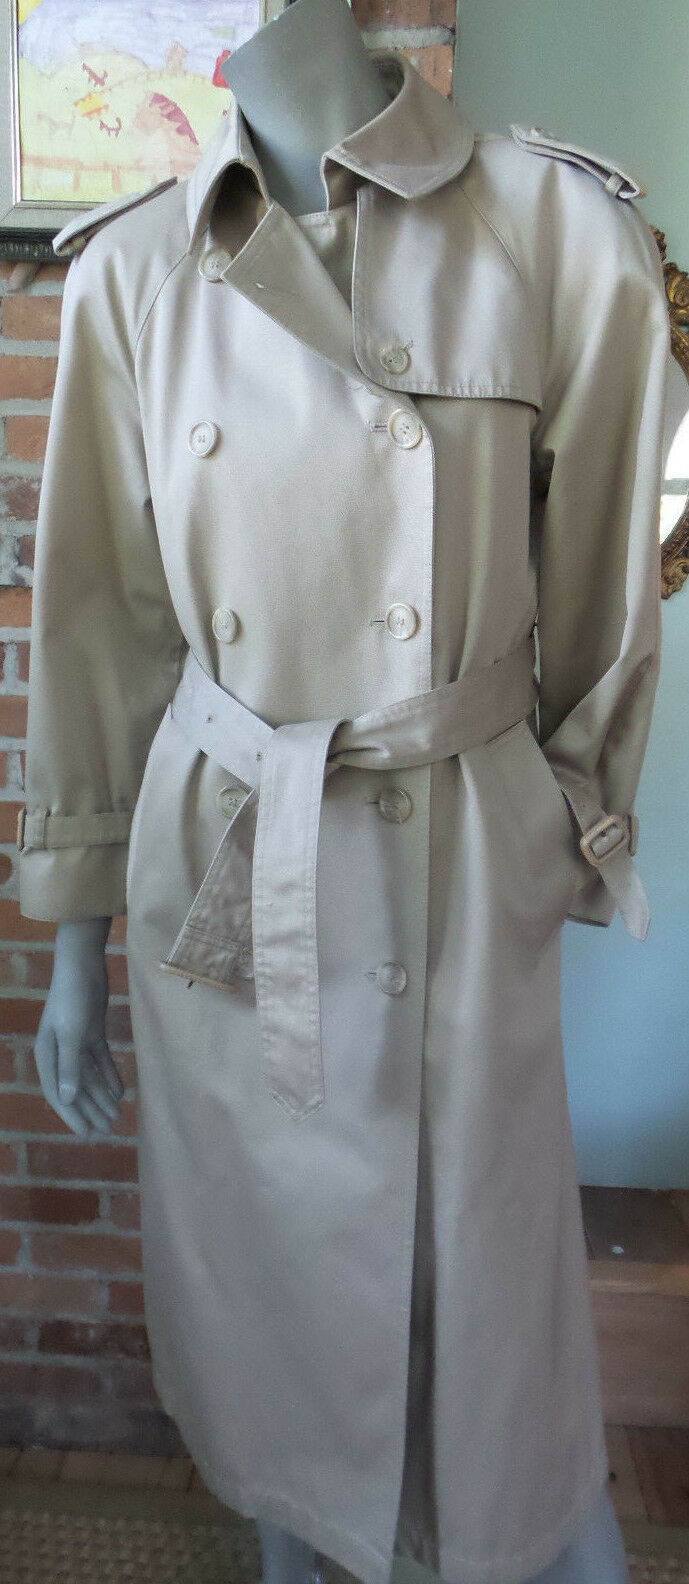 Classic Trench Coat by Evan Picone Double Breasted Belted w  Picone SCARF Lined